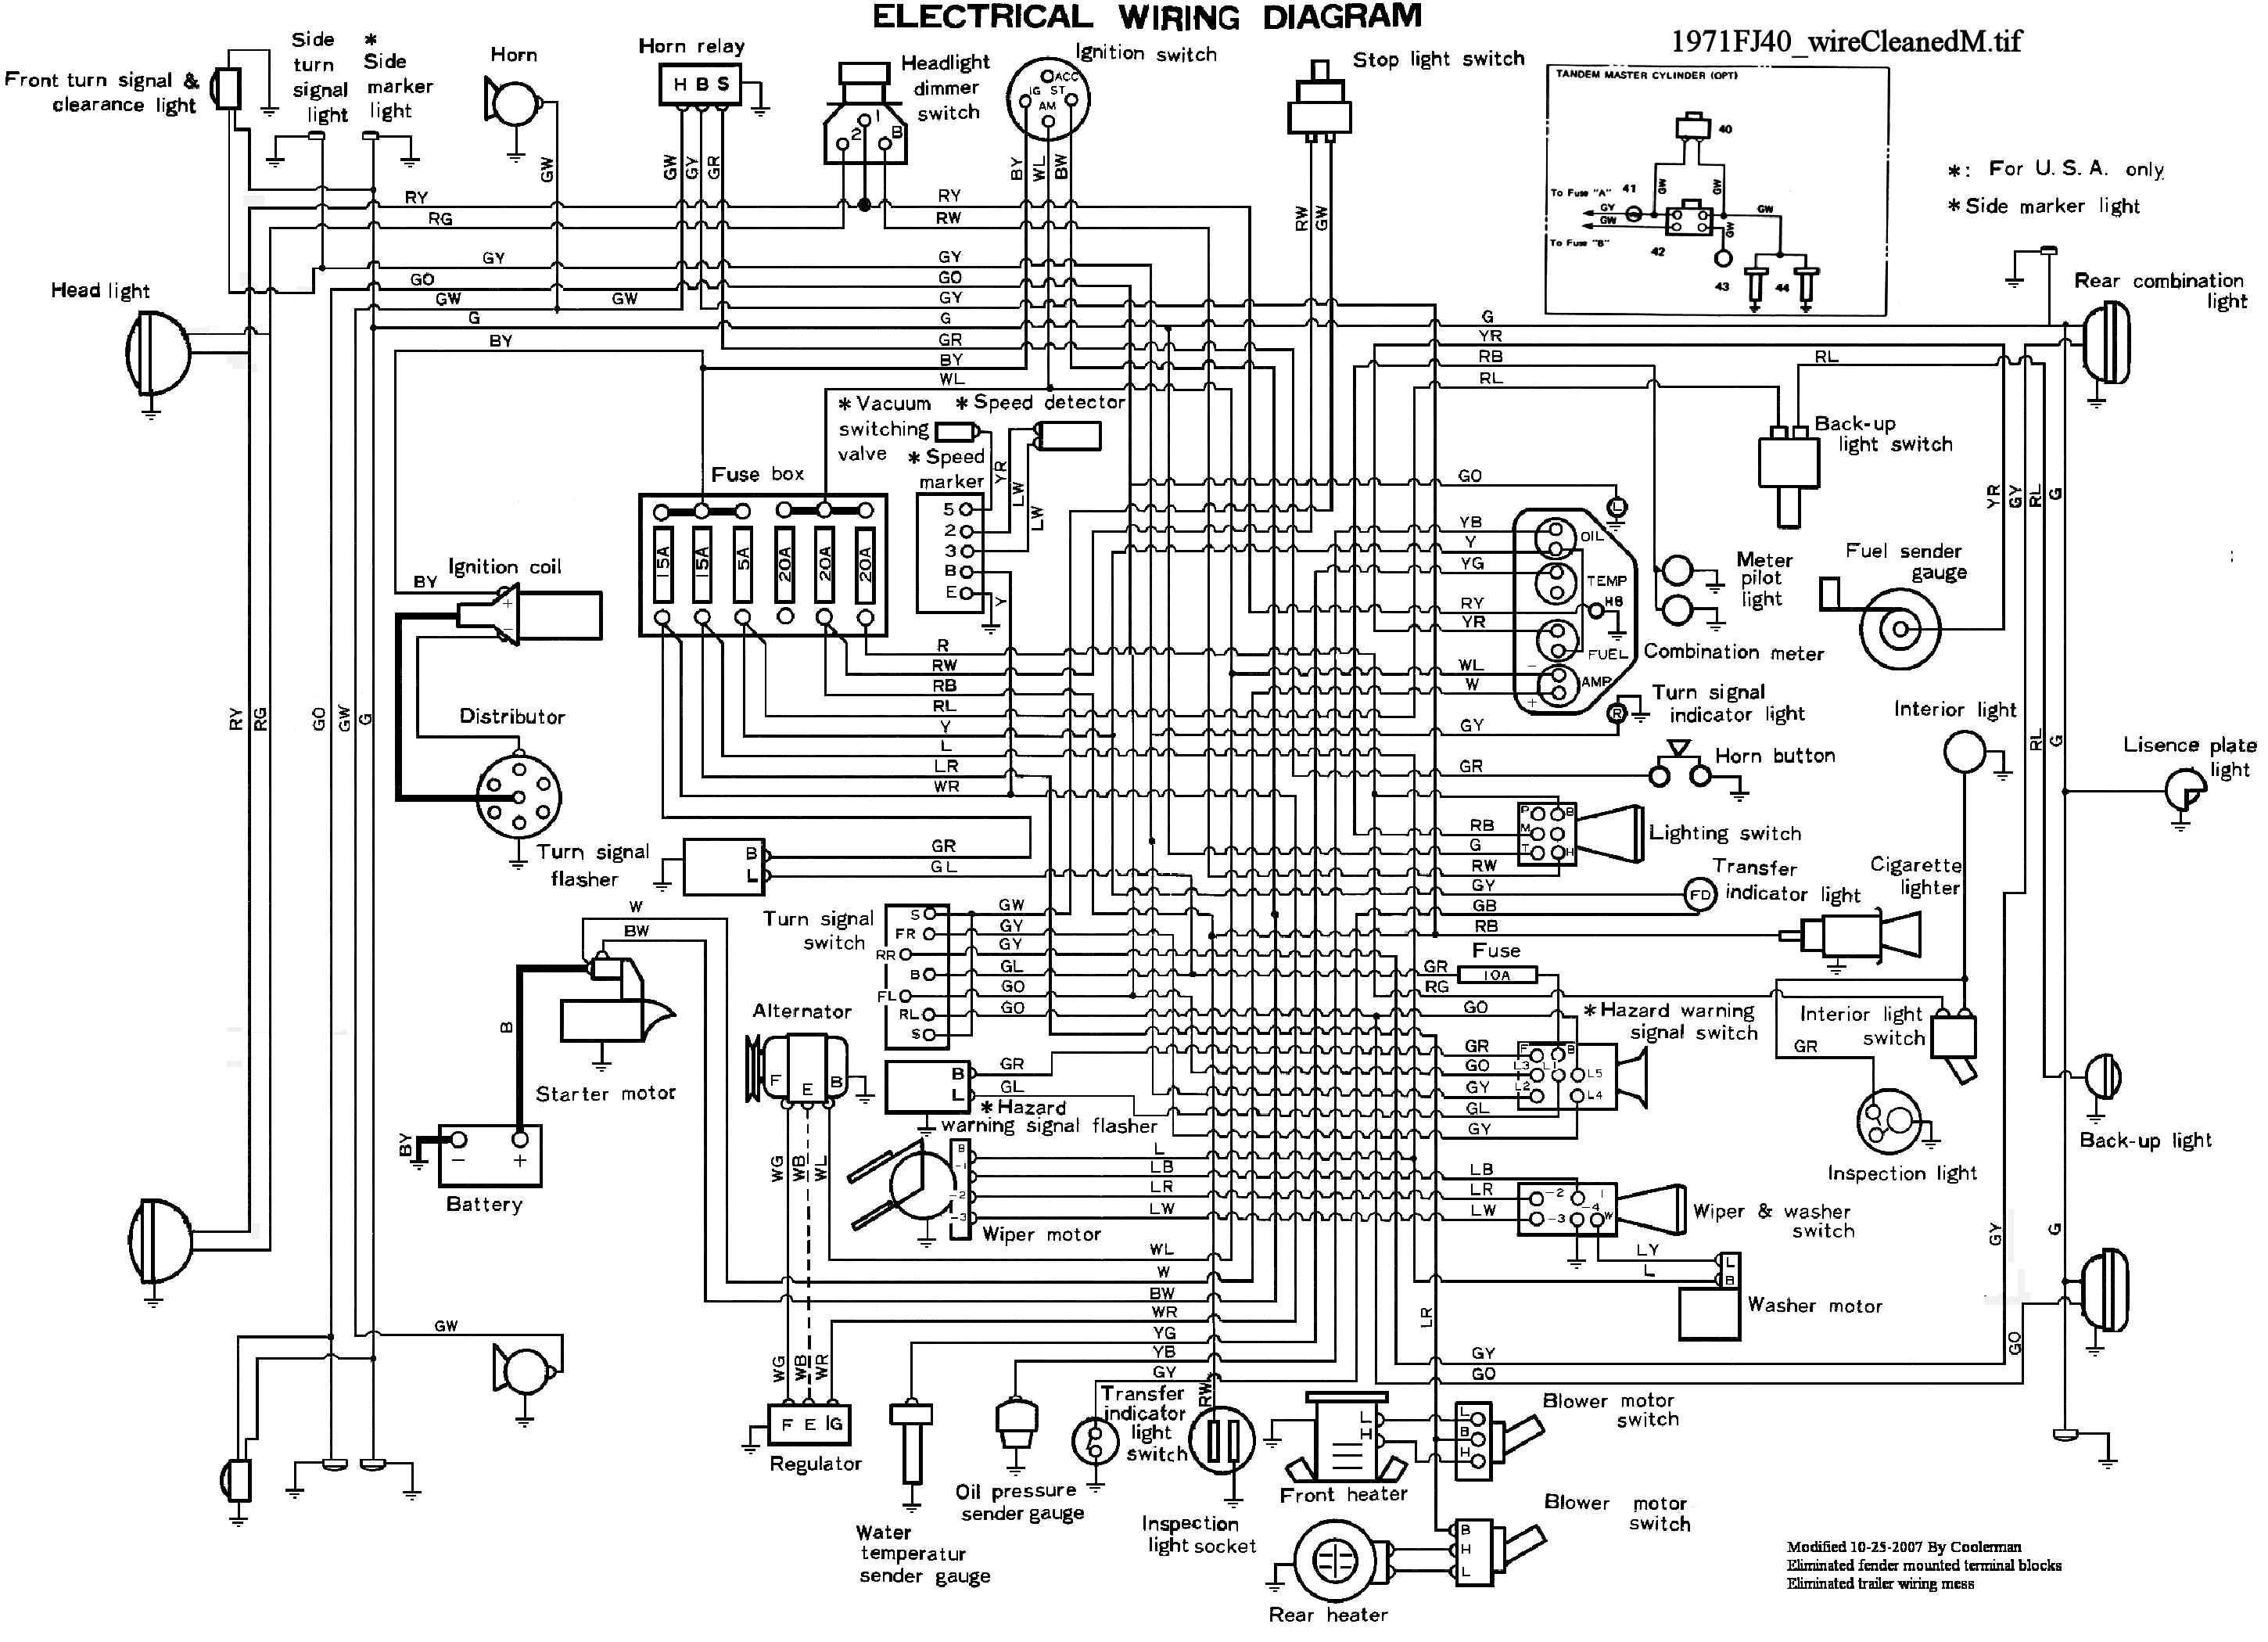 fj40 wiring diagram wiring data schematiccruiser wiring fj40 wiper wiring diagram fj40 wiring diagram